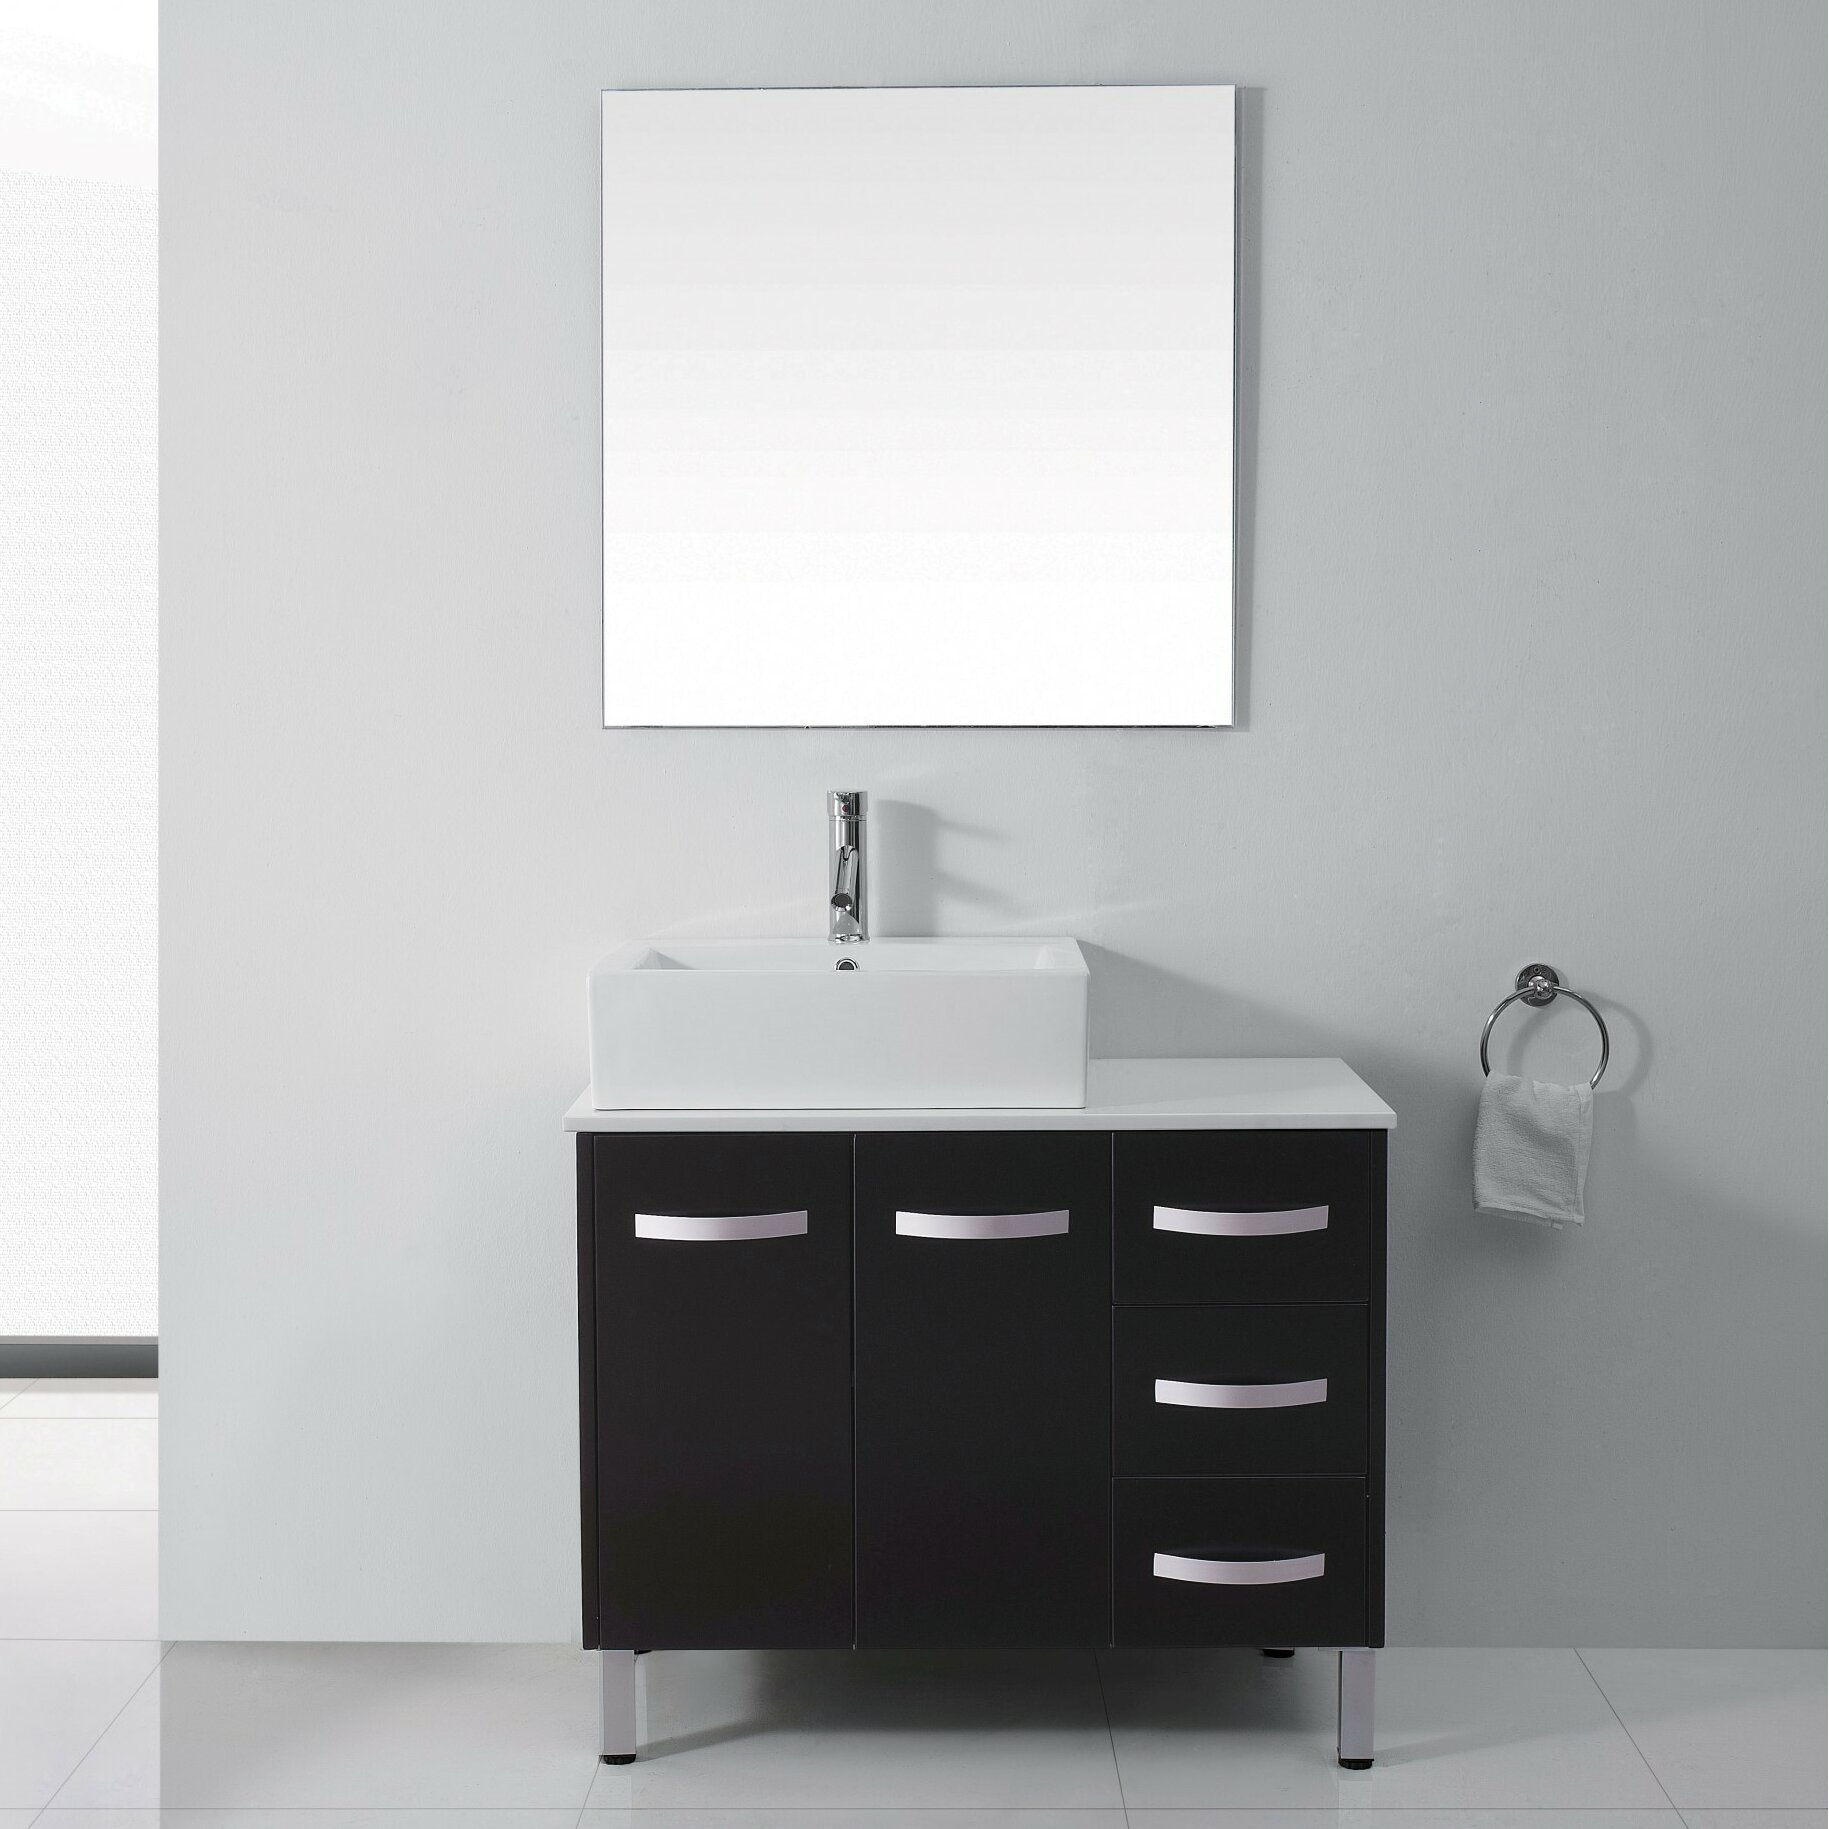 Fantastic A Small Bathroom Can Also Be Beautiful  Many Interesting Independent Cabinets Suspended On The Wall With Same Ultramodern Stylish Designs The Collection Includes Also Modern Mirrors With LED Lights In A Variety Of Shapes And Frame